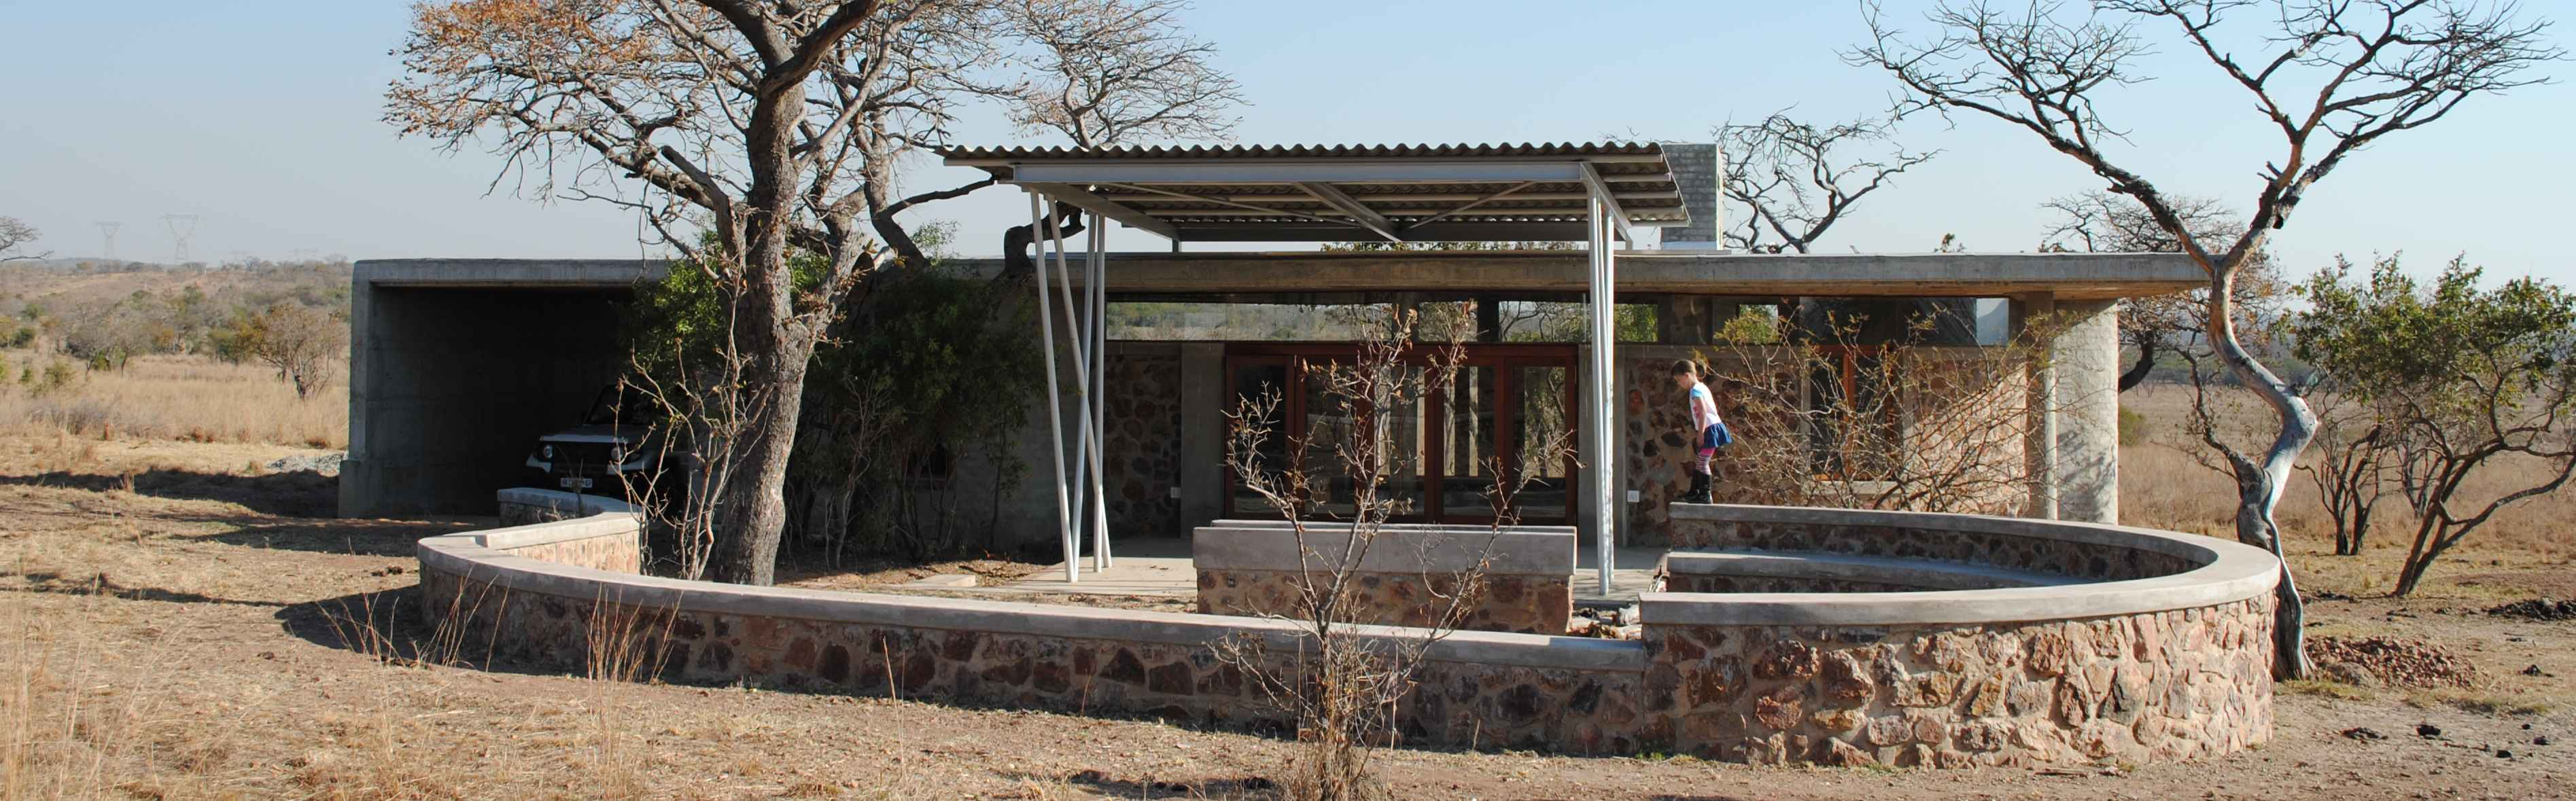 Bush retreat, DINOKENG